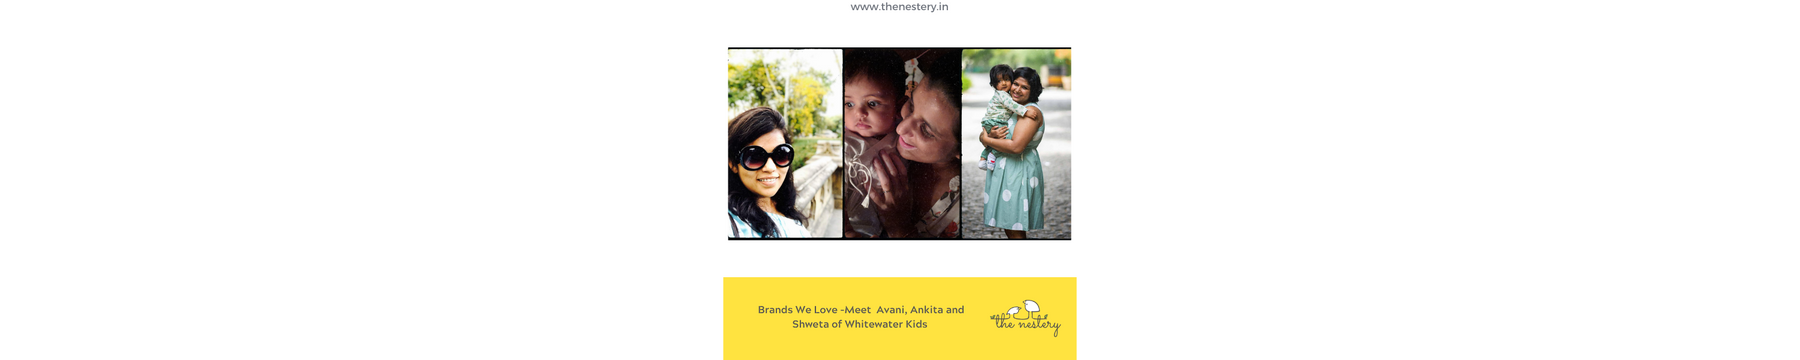 "In Conversation with the Brands We Love -  Meet Avani, Ankita and Shweta of ""Whitewater Kids"""